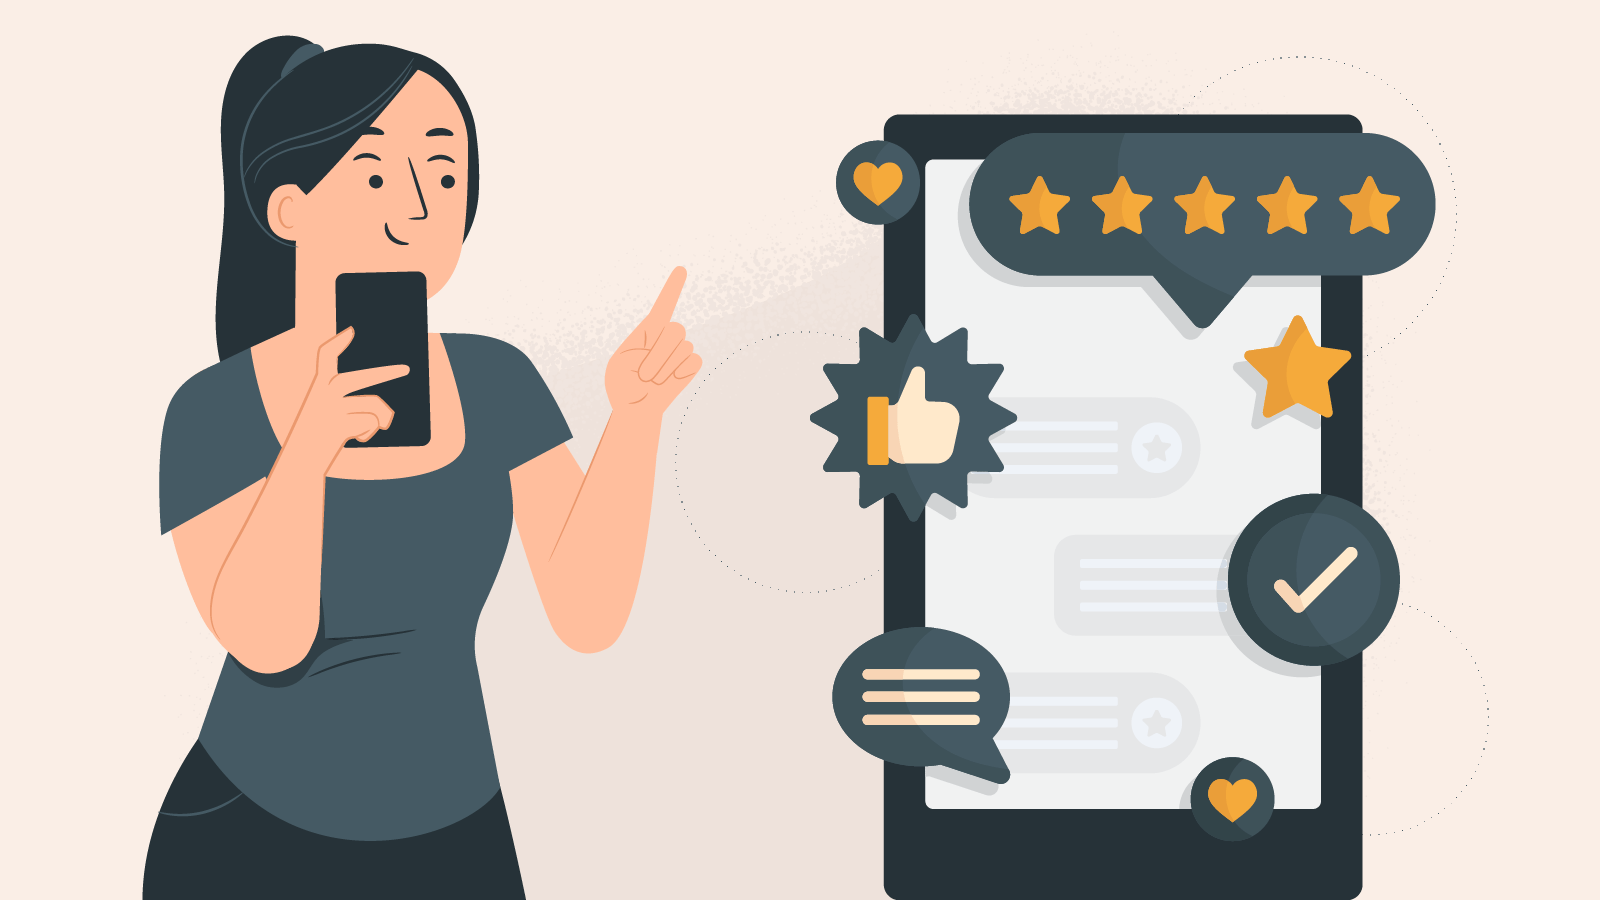 What is the role of reviews